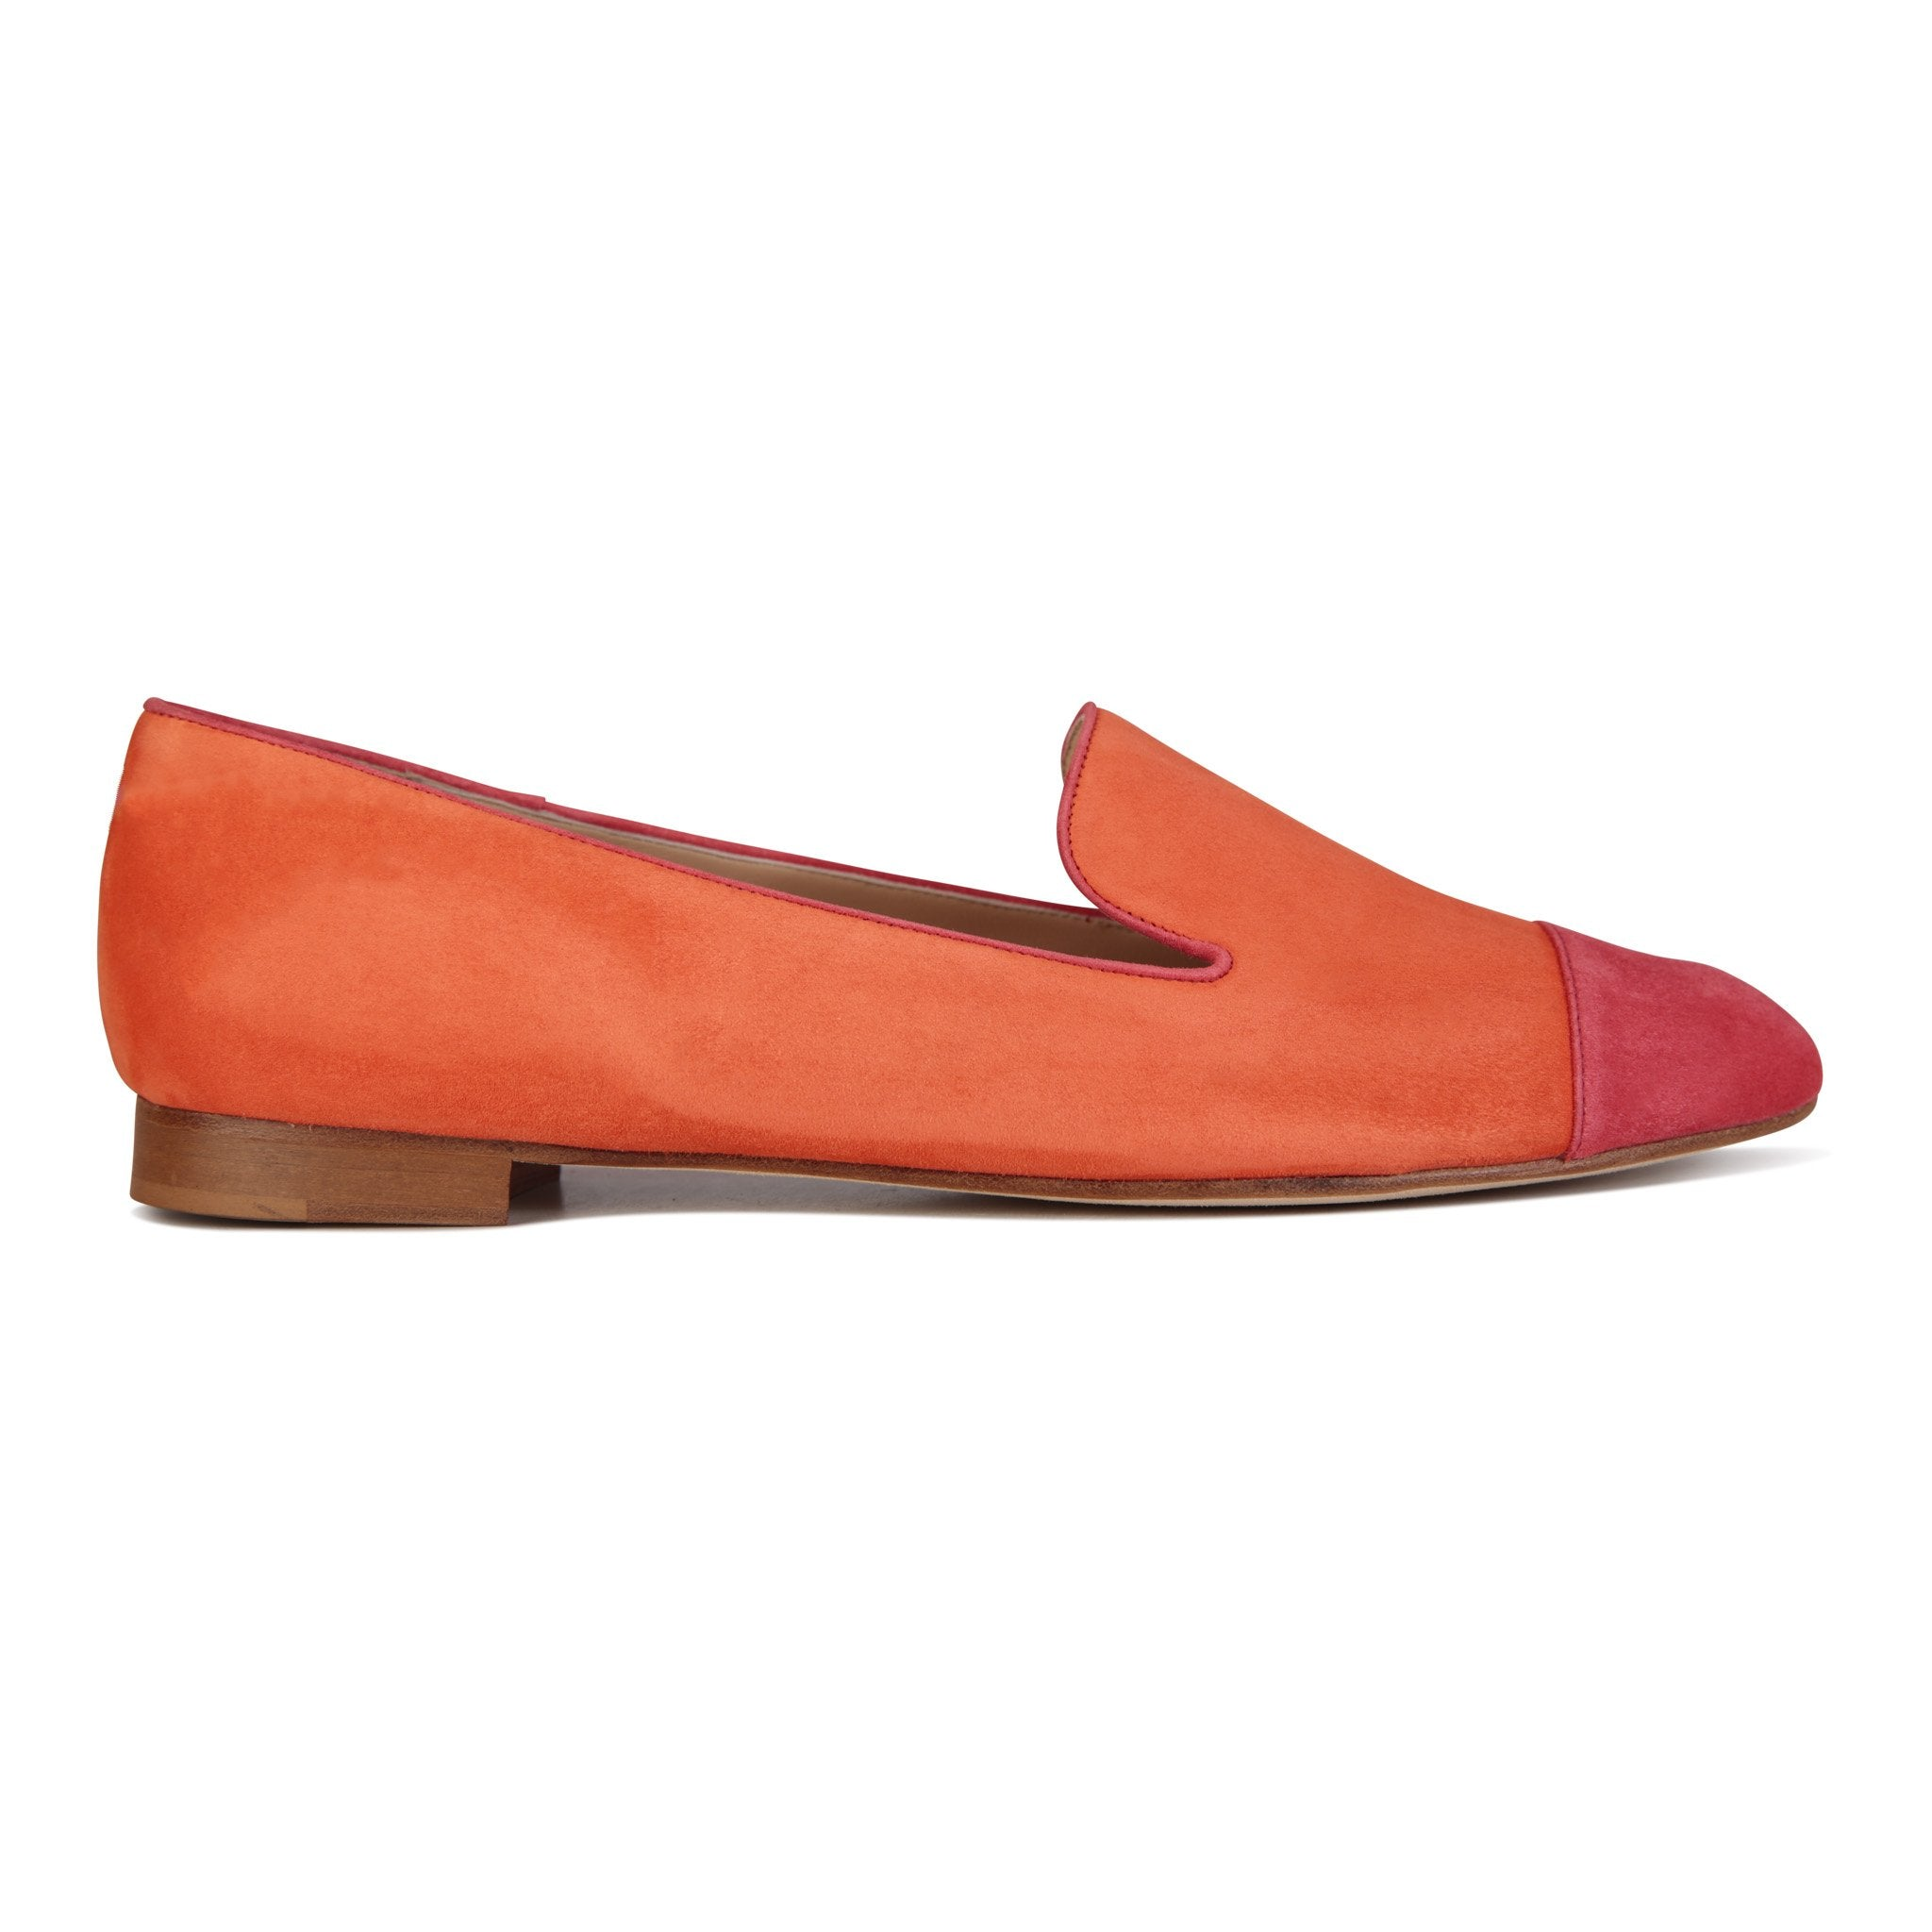 RAVENNA - Velukid Tuscan Sunset + Dusk, VIAJIYU - Women's Hand Made Sustainable Luxury Shoes. Made in Italy. Made to Order.